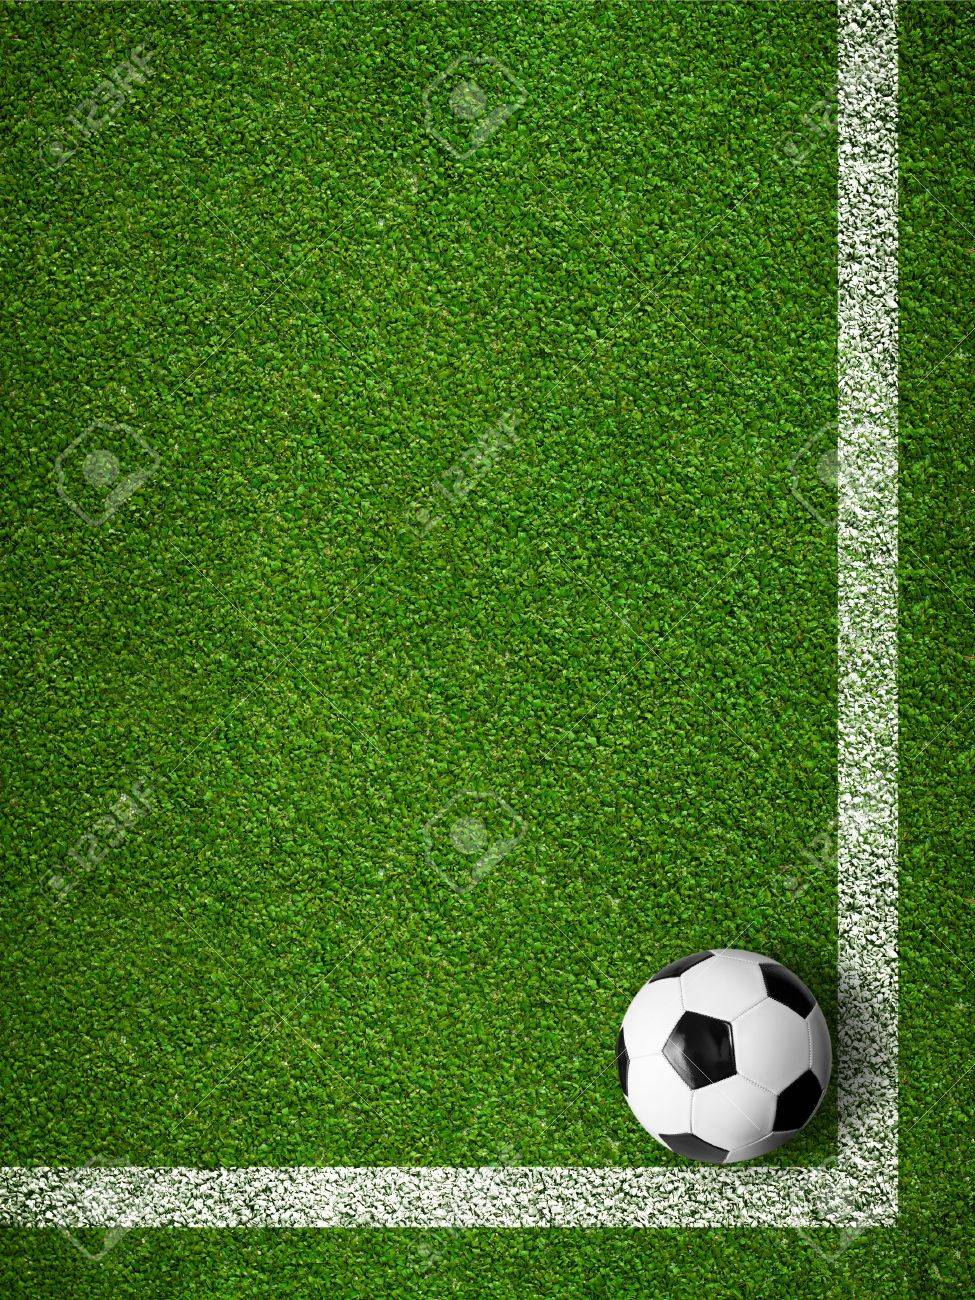 Soccer ball framed by white marking lines top view. Sport background. Stock Photo - 19377651